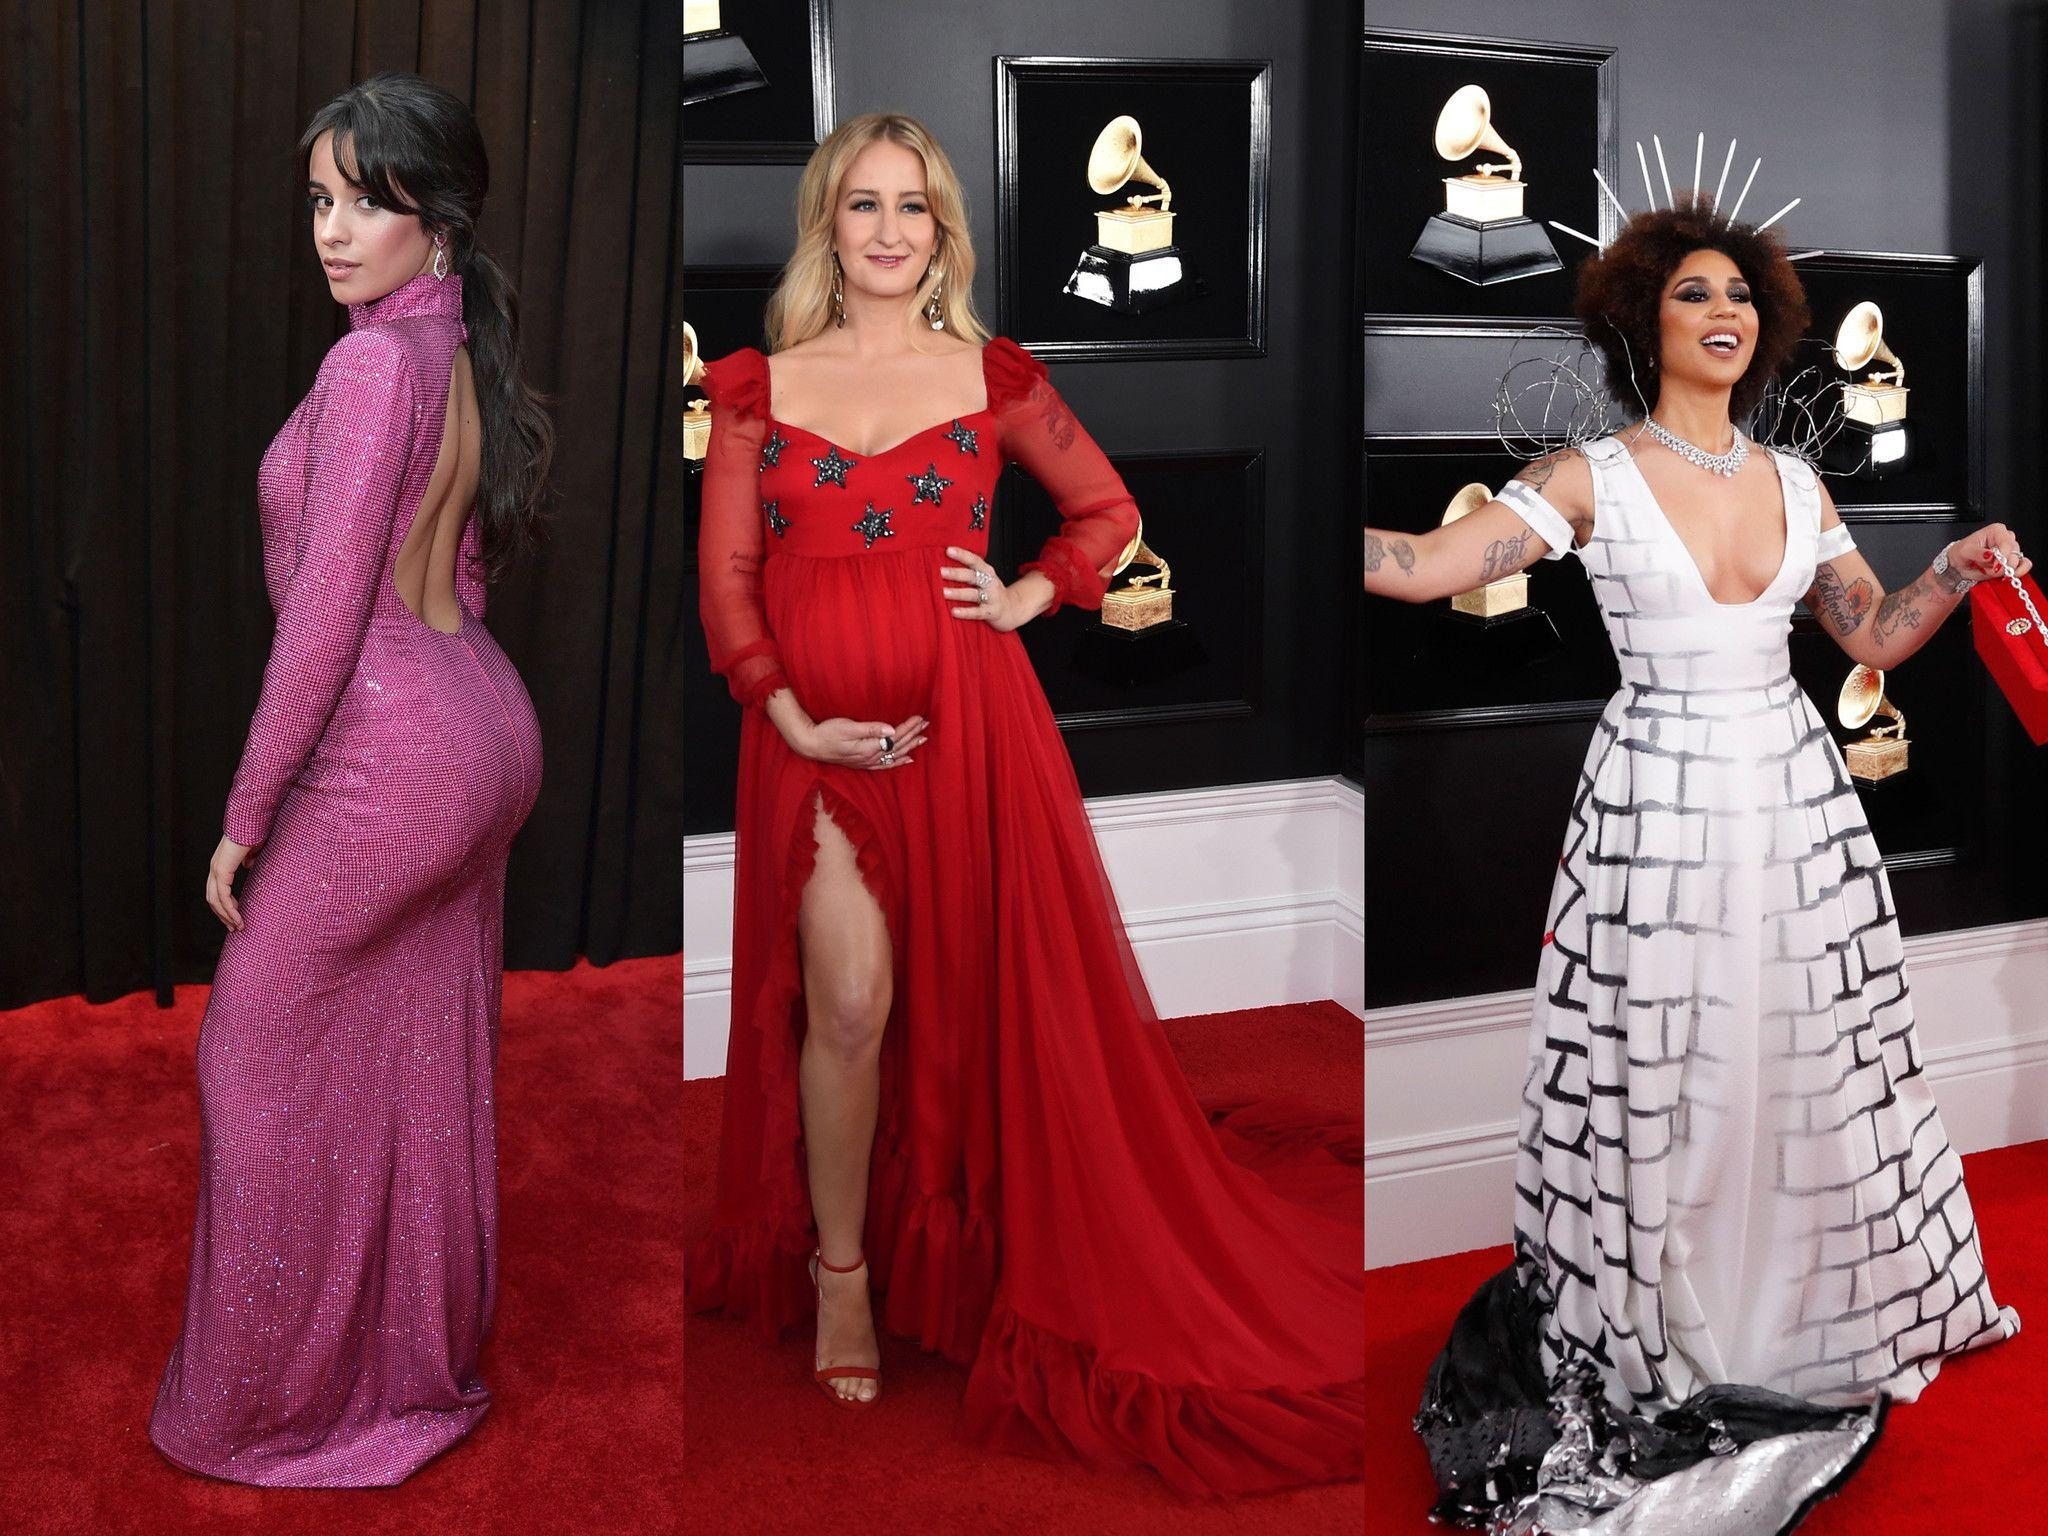 Grammys 2019: Best and worst dressed - The Morning Call